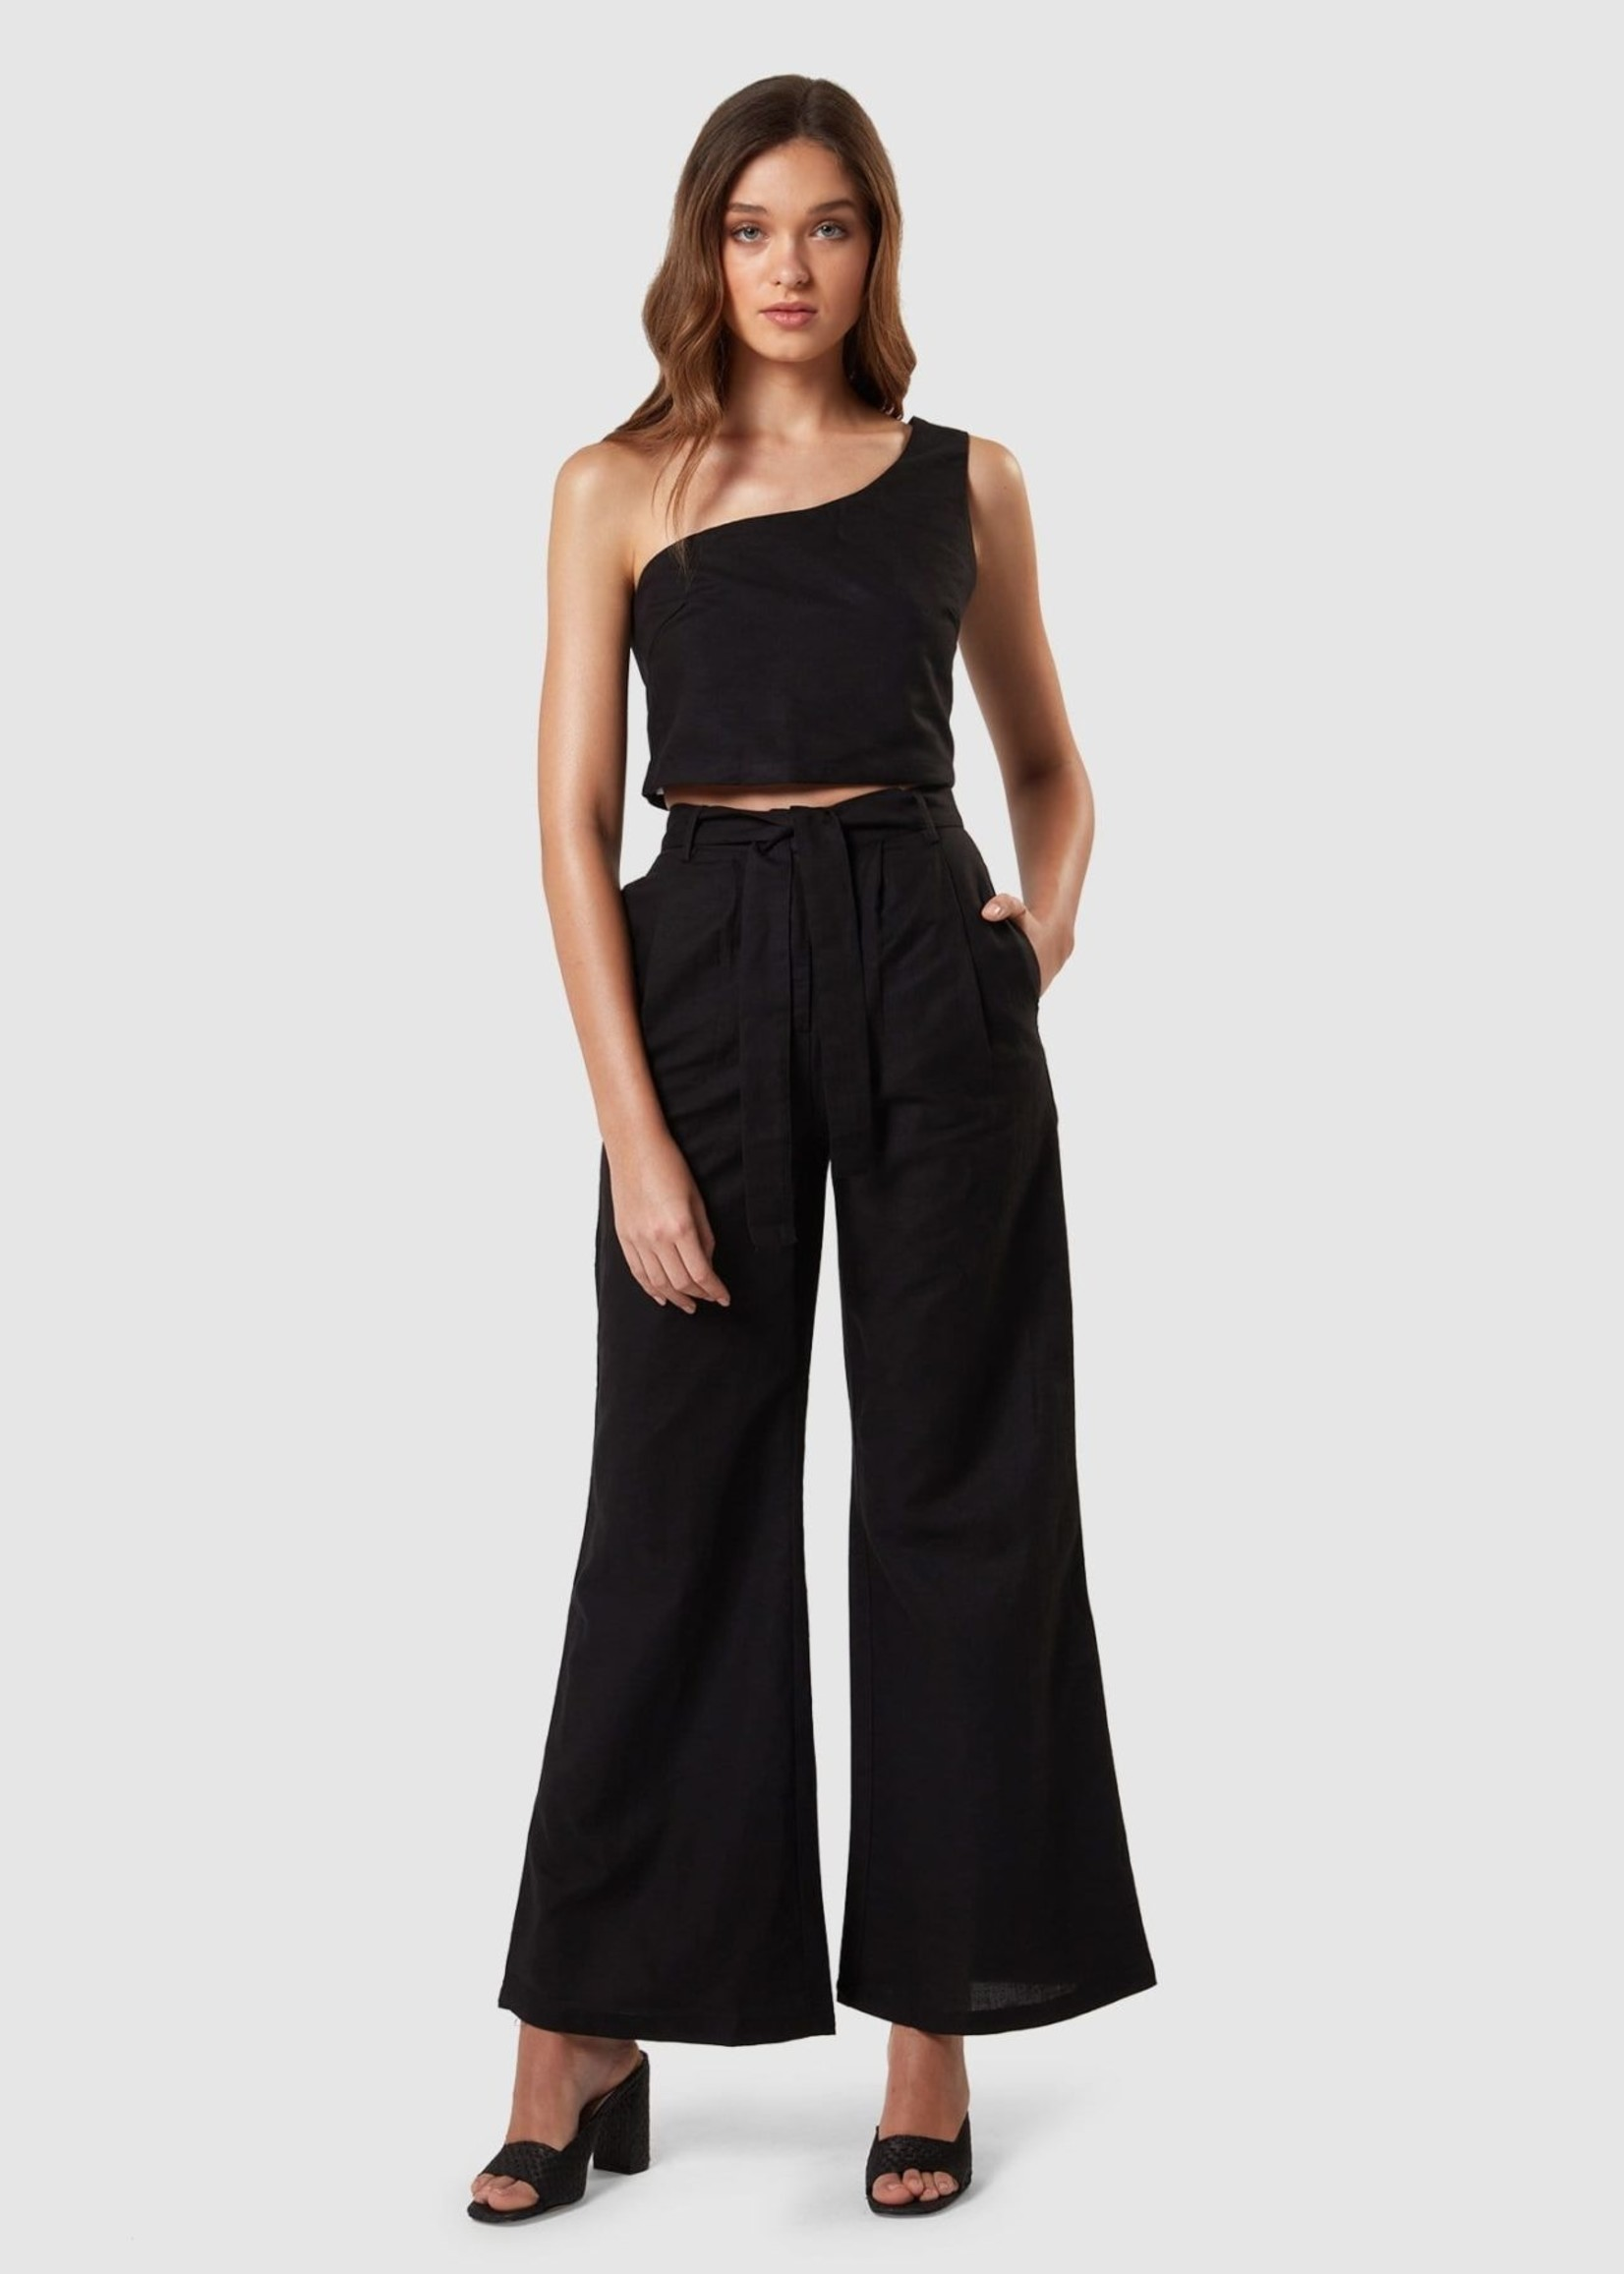 Elitaire Boutique Bask Black Pant